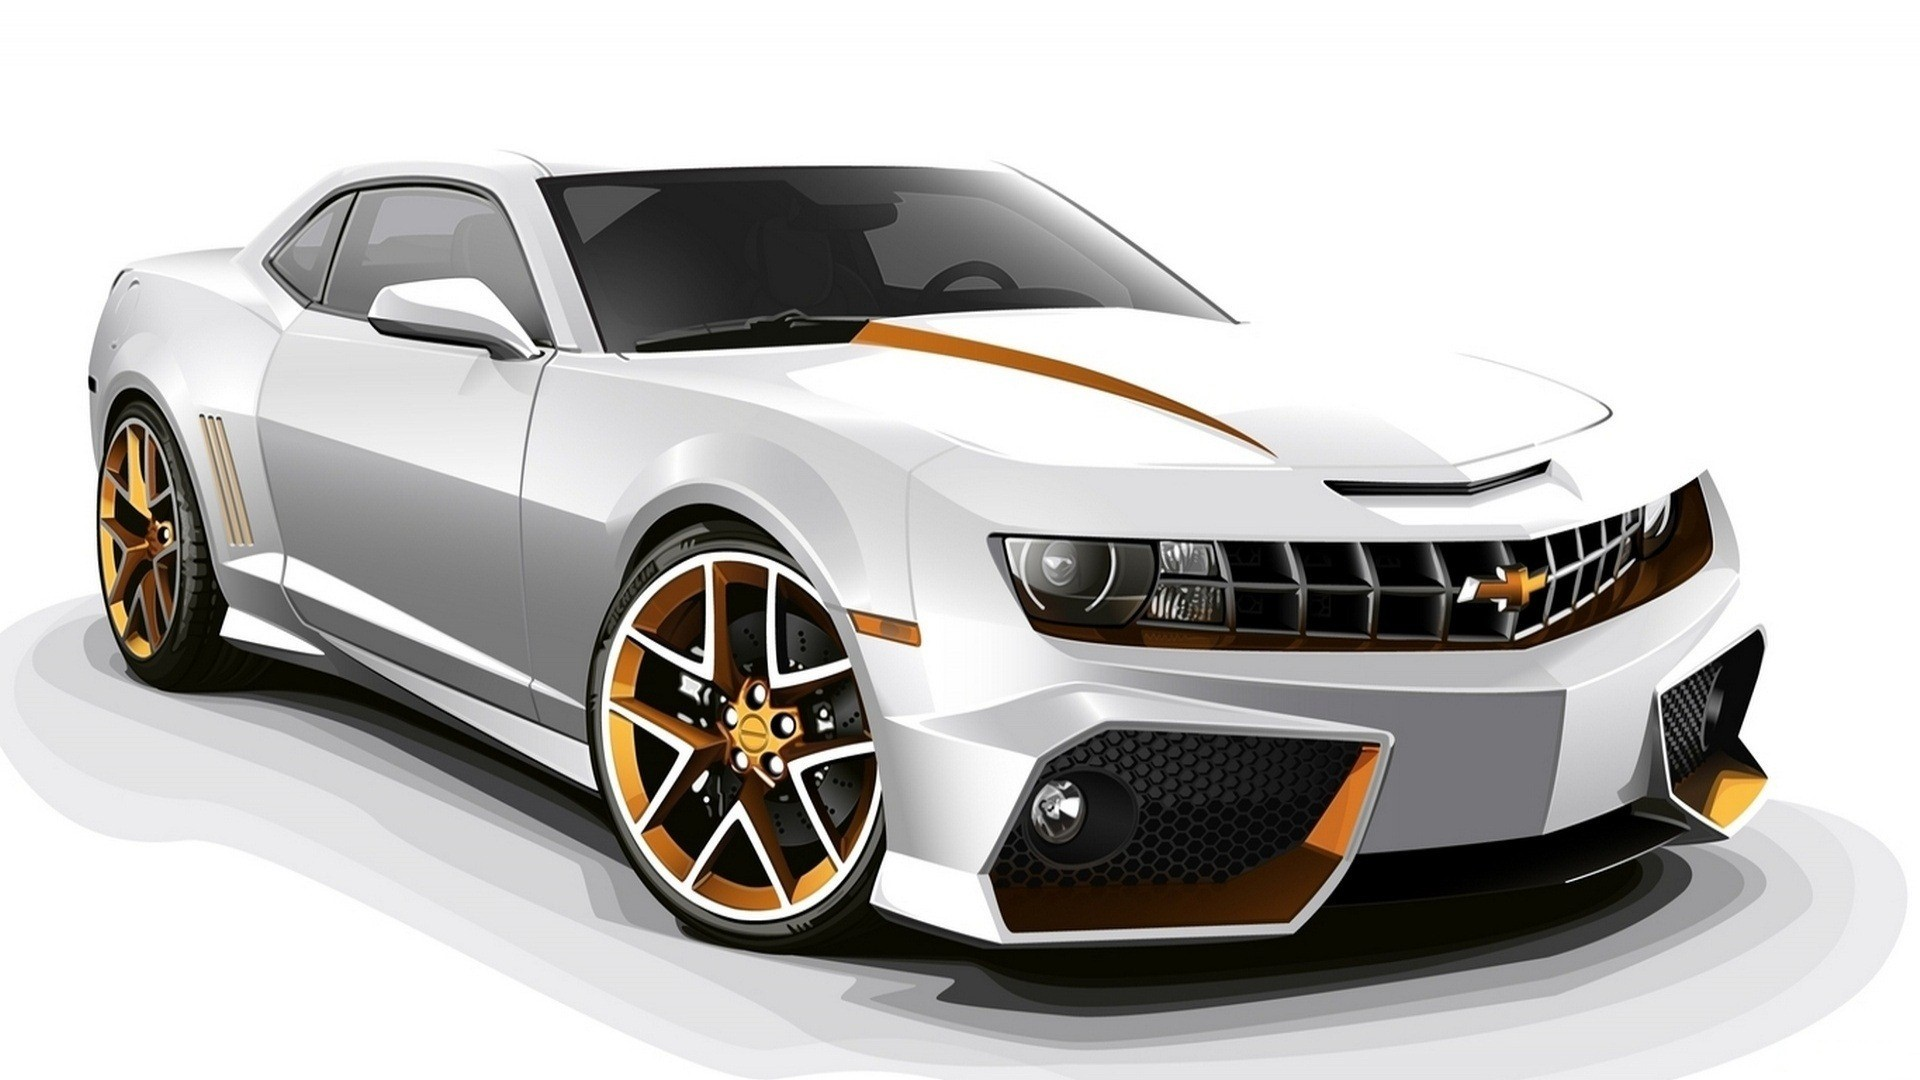 chevrolet camaro white 3d hd car wallpapers hd wallpapers - Cool Cars Wallpapers 3d